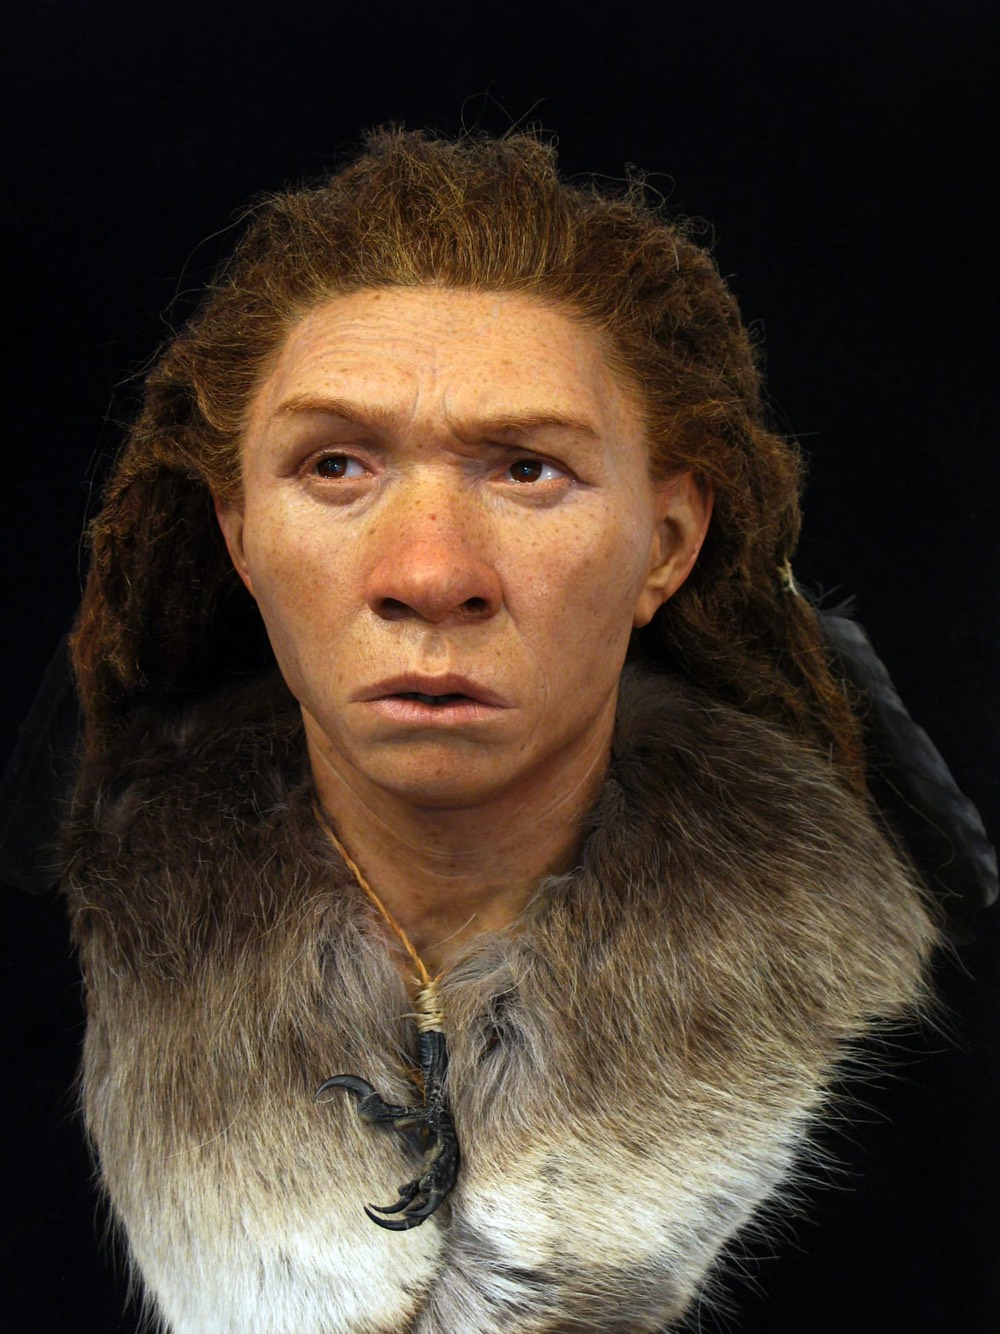 Hand-Sculpted Archaeological Reconstructions of Ancient Faces